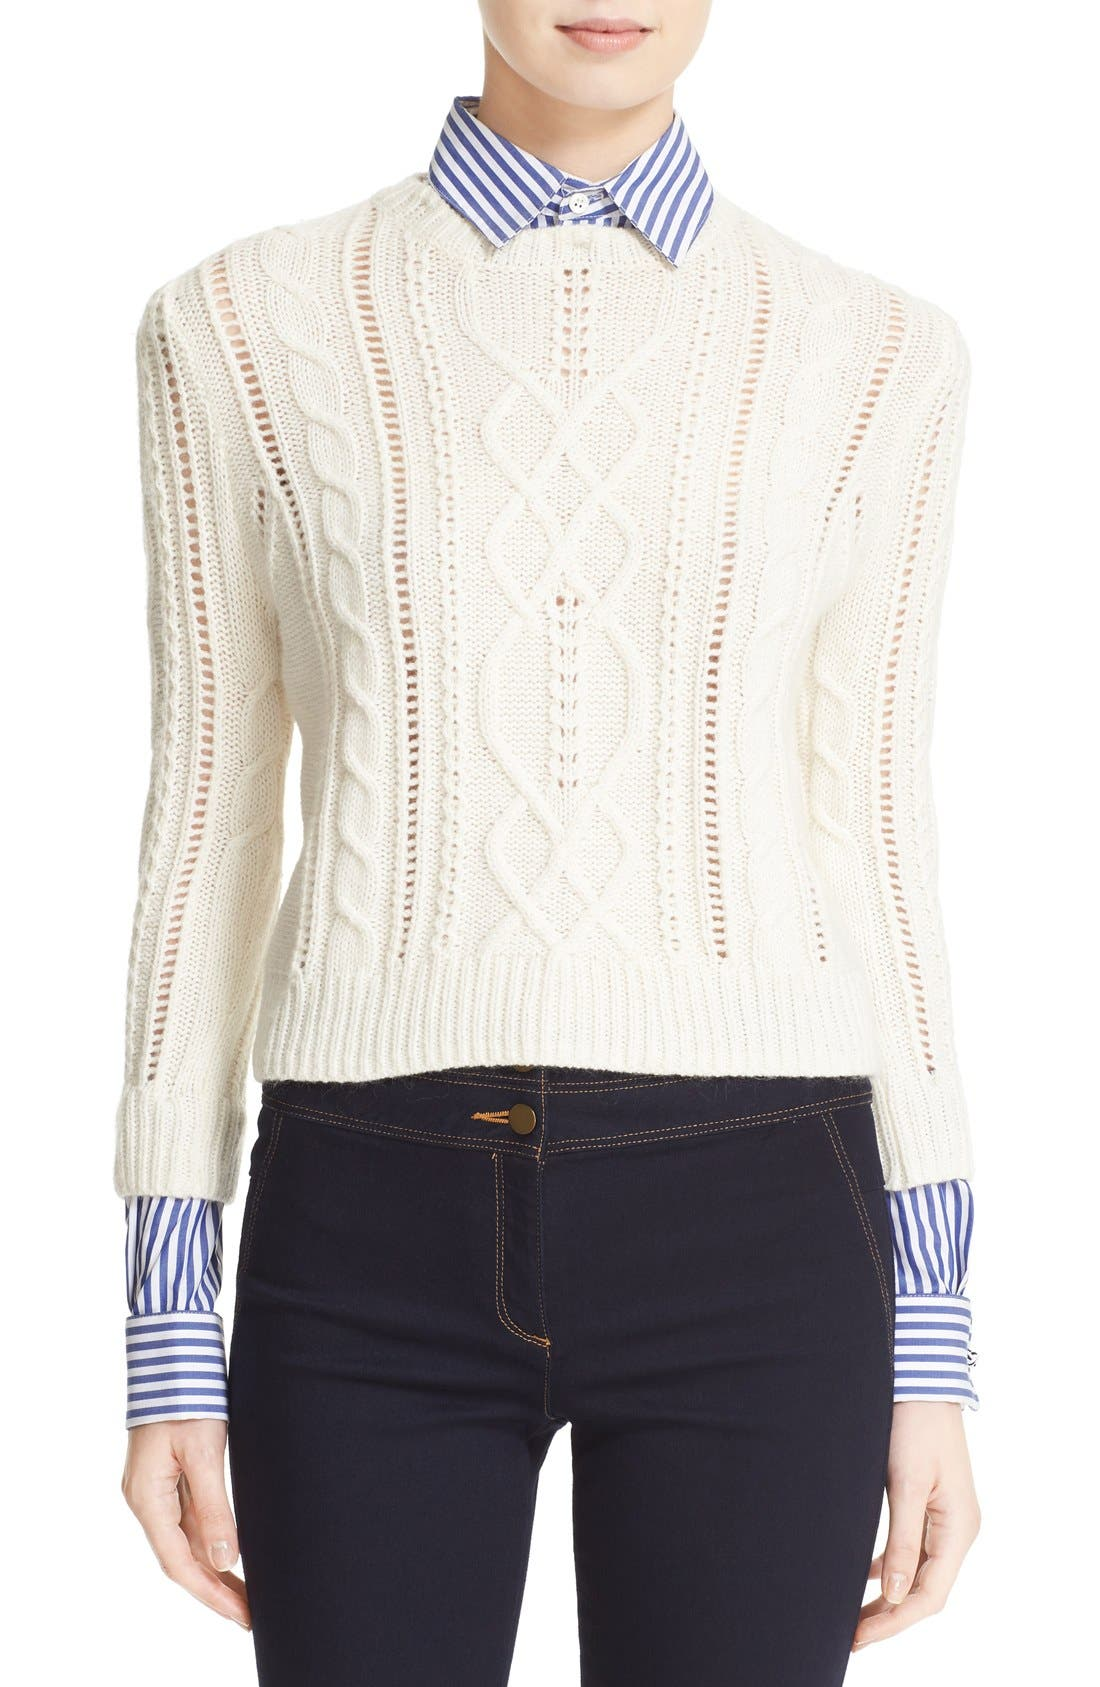 Veronica Beard Surrey Sweater With Detachable Collar Cuffs Nordstrom